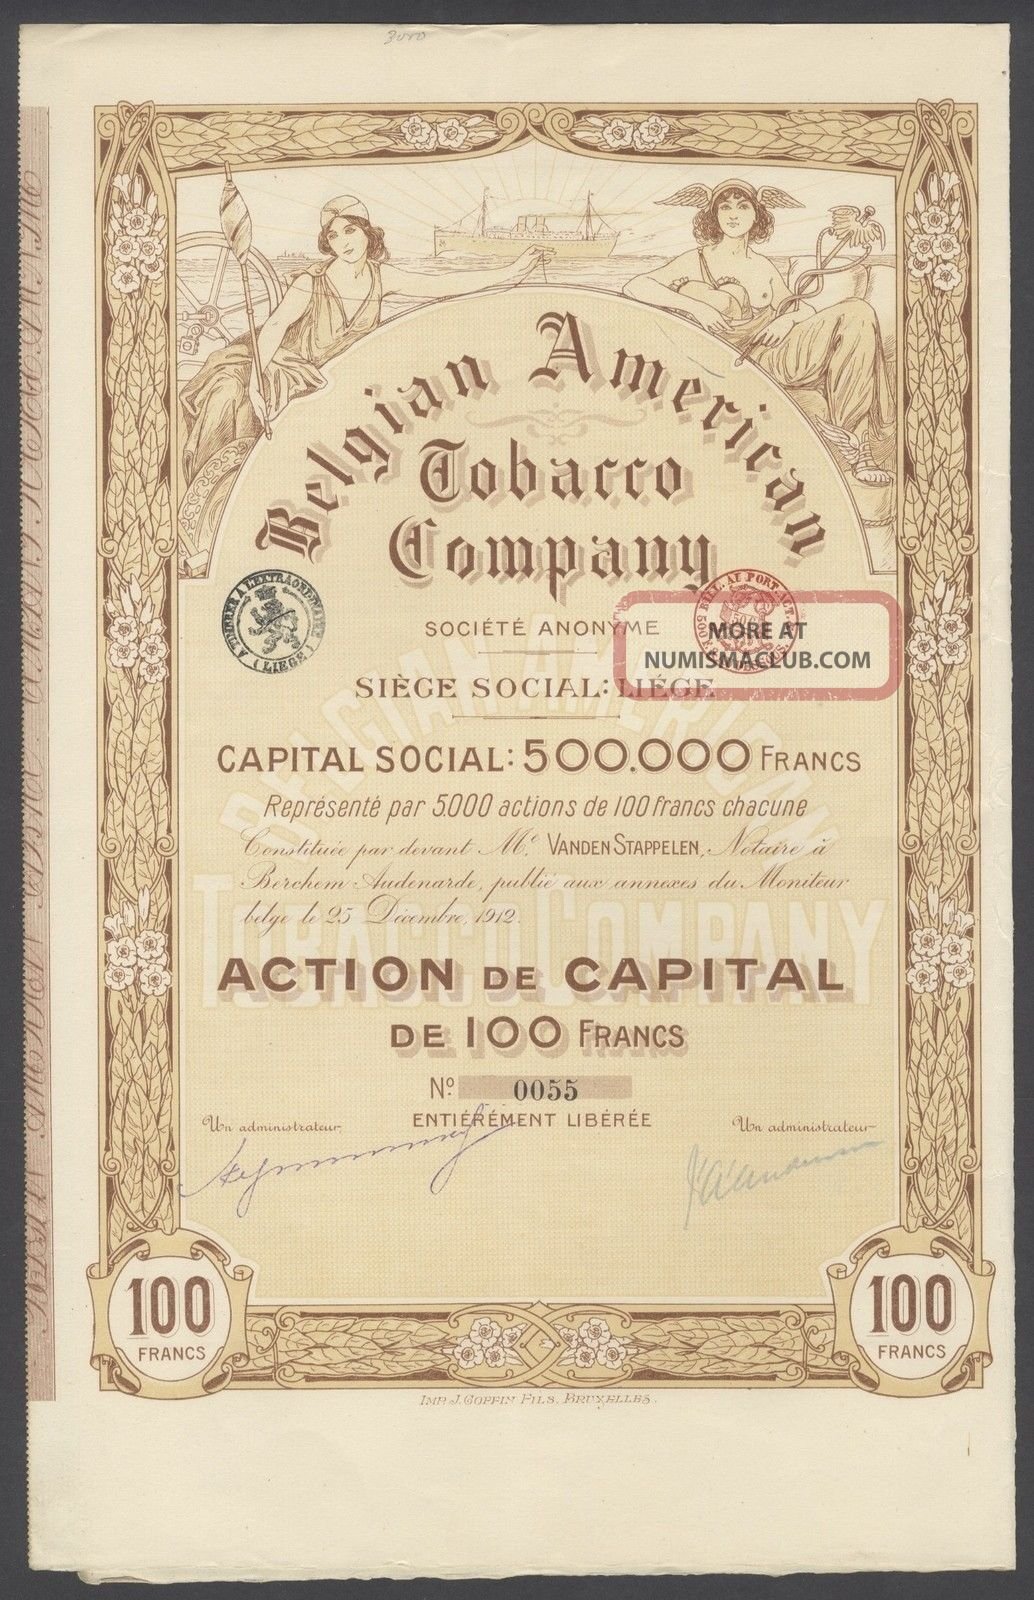 Belgium 1912 Illustrated Bond With Coupons Belgian American Tobaccco Co.  R4037 World photo